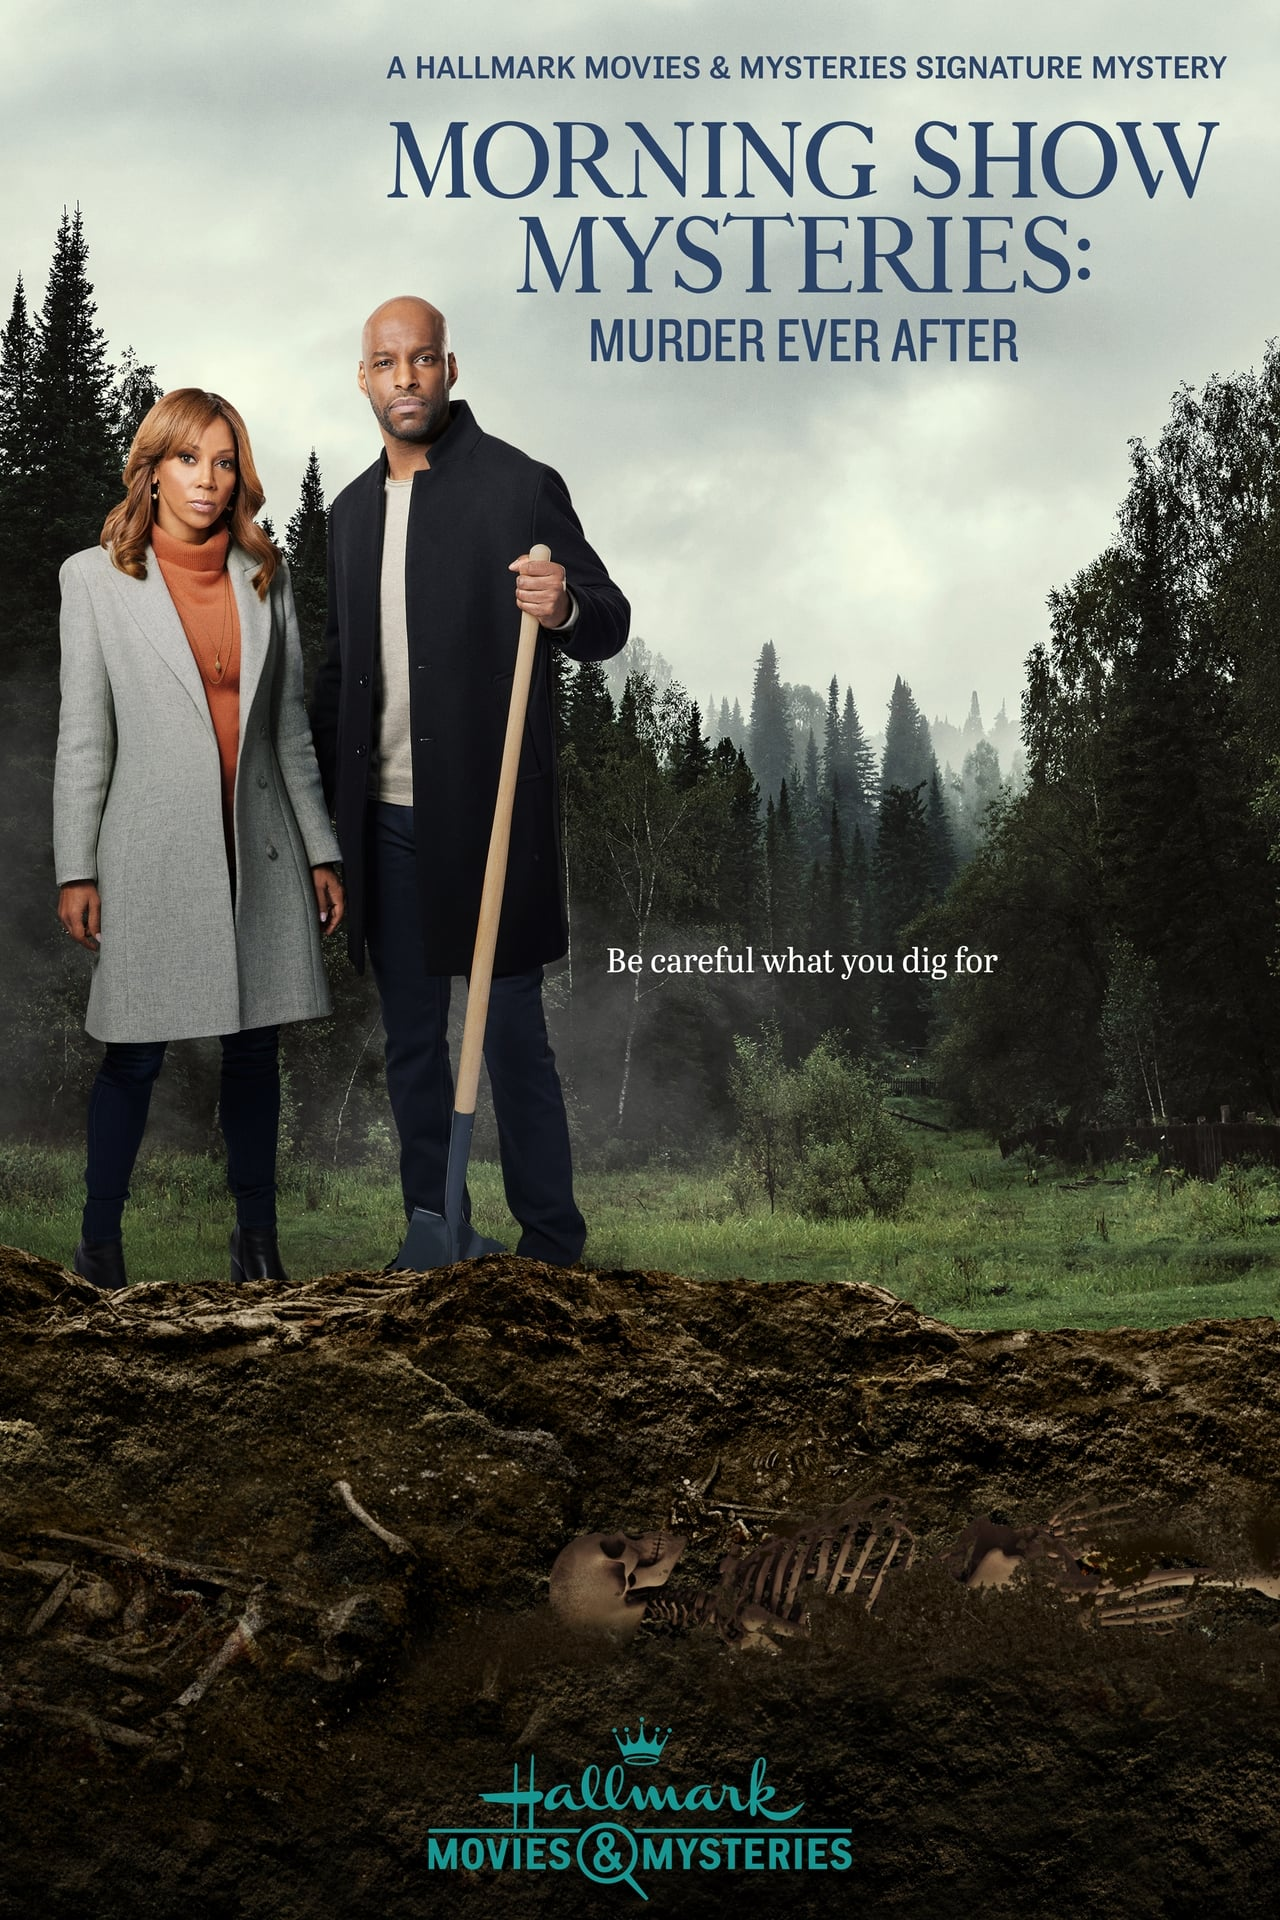 Morning Show Mysteries: Murder Ever After